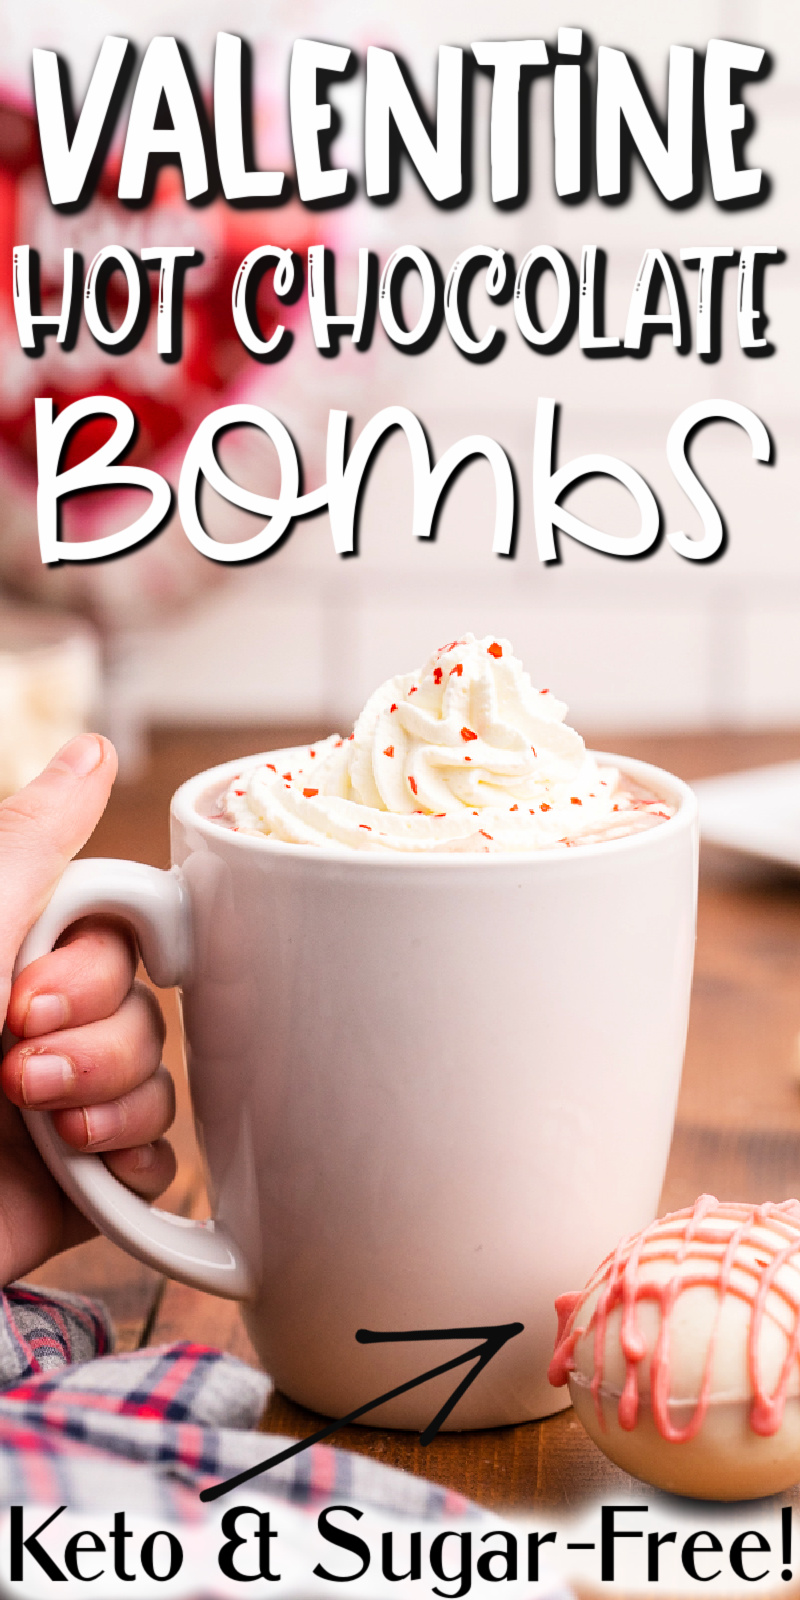 Keto Valentine Hot Chocolate Bombs - Treat your Valentine to a super creamy, rich, and delicious Keto Hot Chocolate Bomb. They have only 5 ingredients and 0 net carbs! They are sugar-free, low-carb, and gluten-free too!! #lowcarb #keto #glutenfree #sugarfree #hot #chocolate #bomb #valentinesday #valentine #recipe